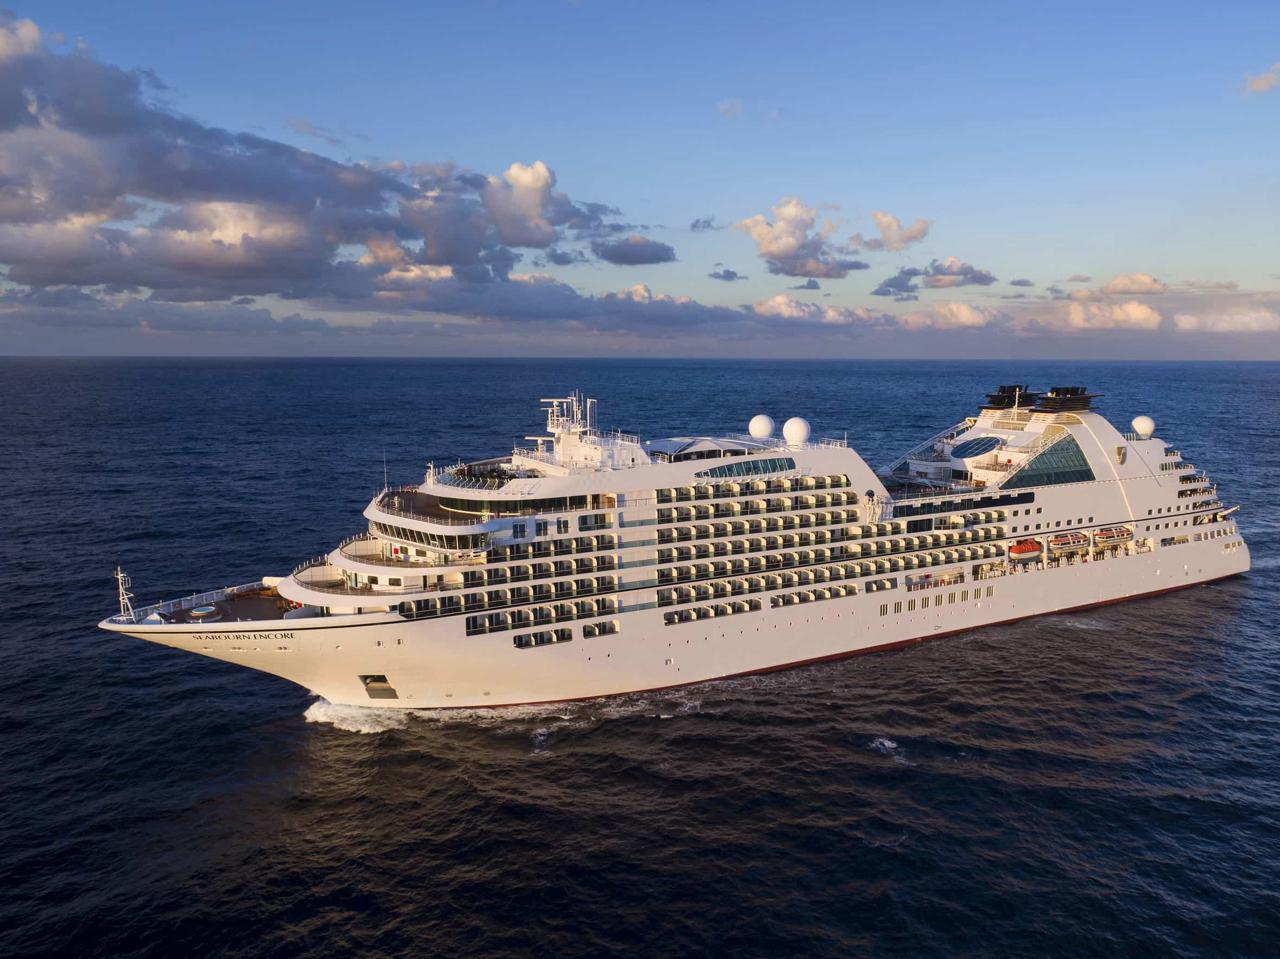 Seabourn Encore at sea. Photo by Michel Verdure.